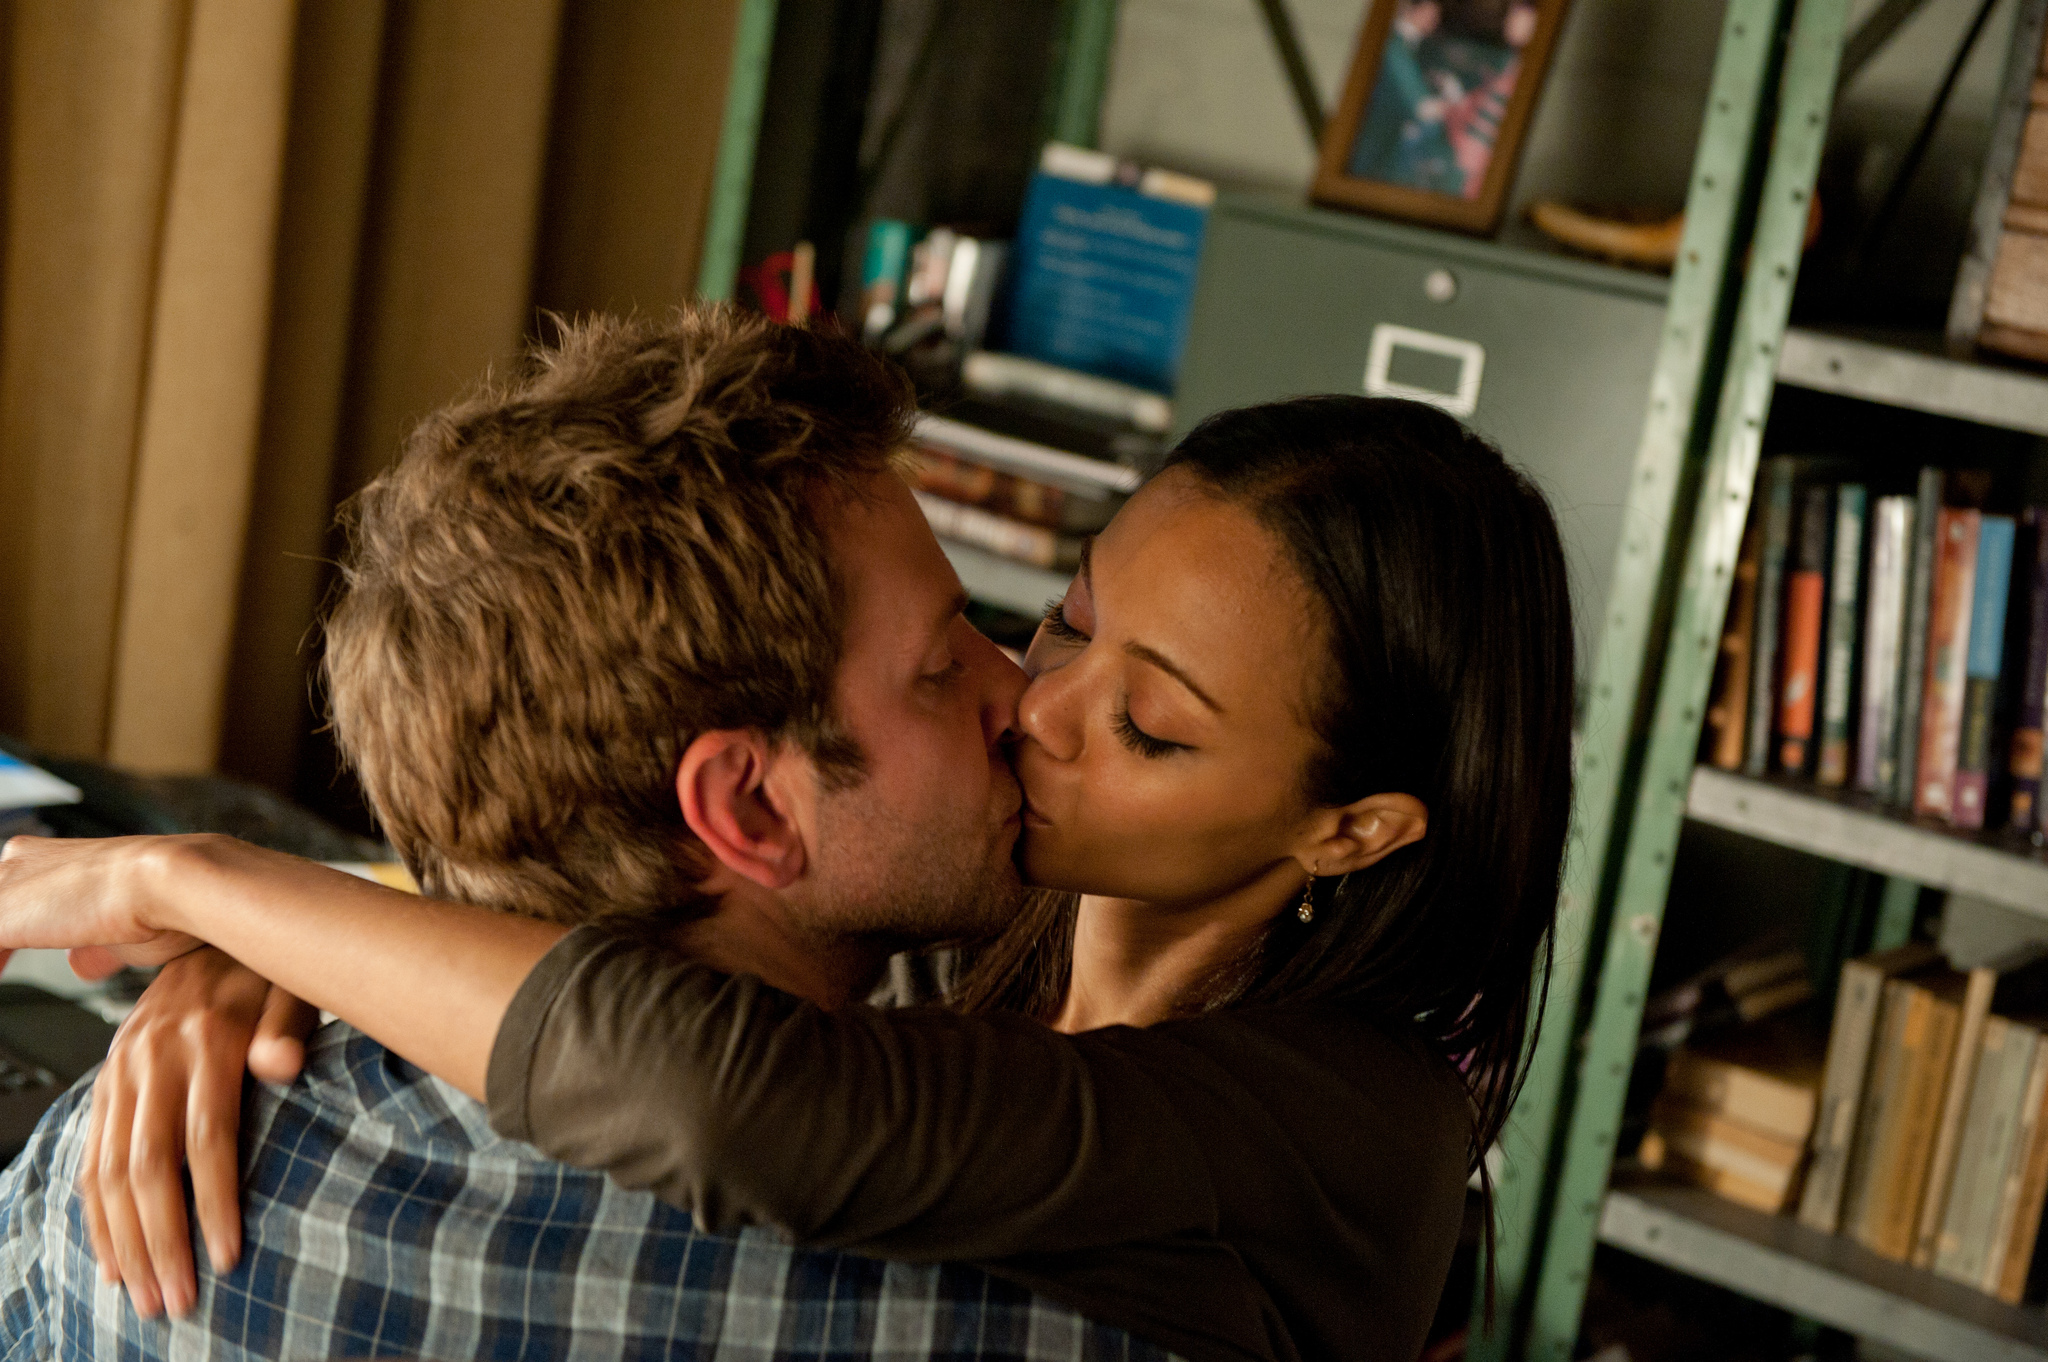 Bradley Cooper and Zoe Saldana in The Words (2012)